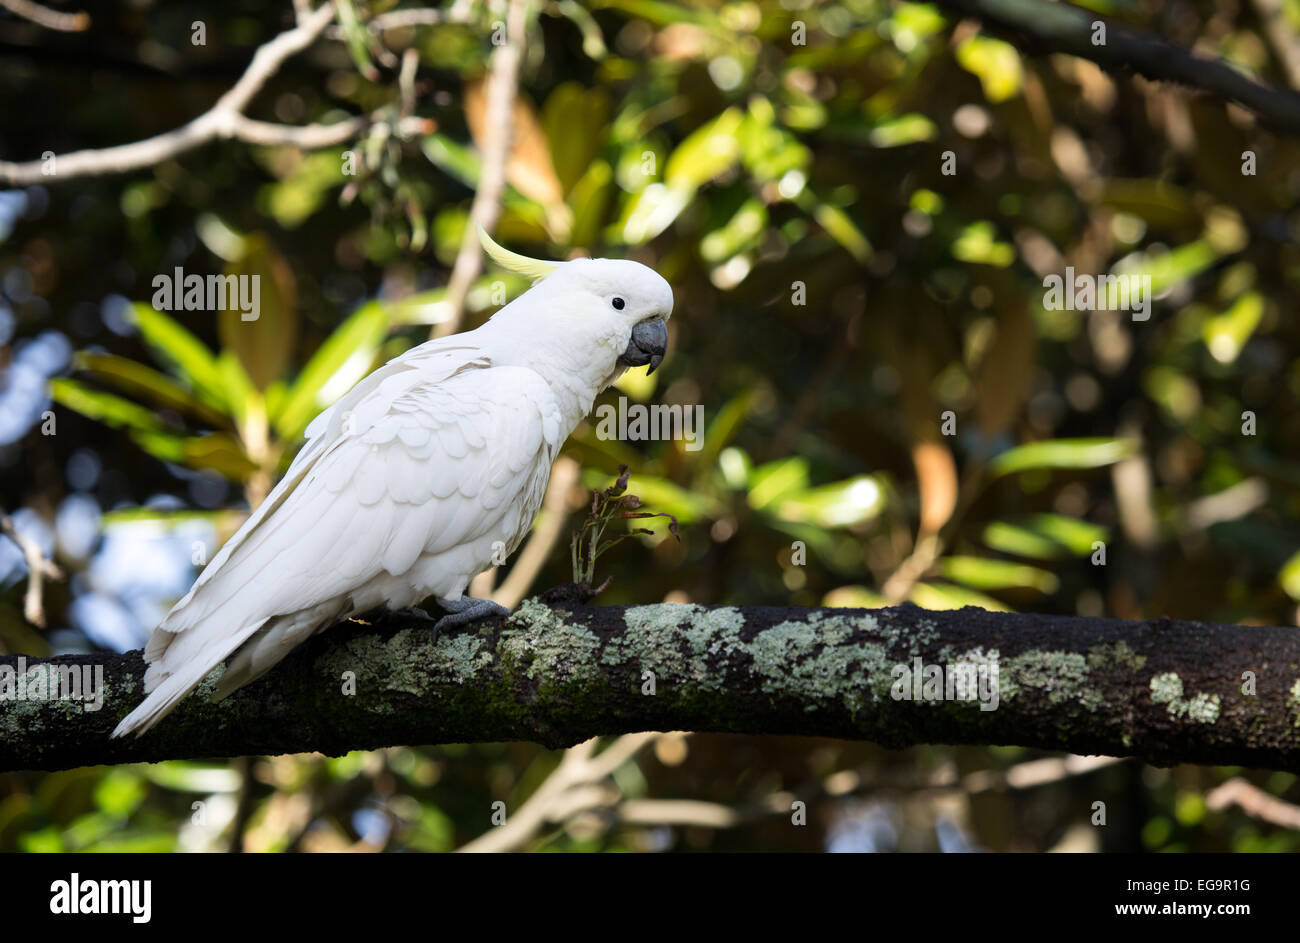 Sulphur-crested cockatoo - Stock Image